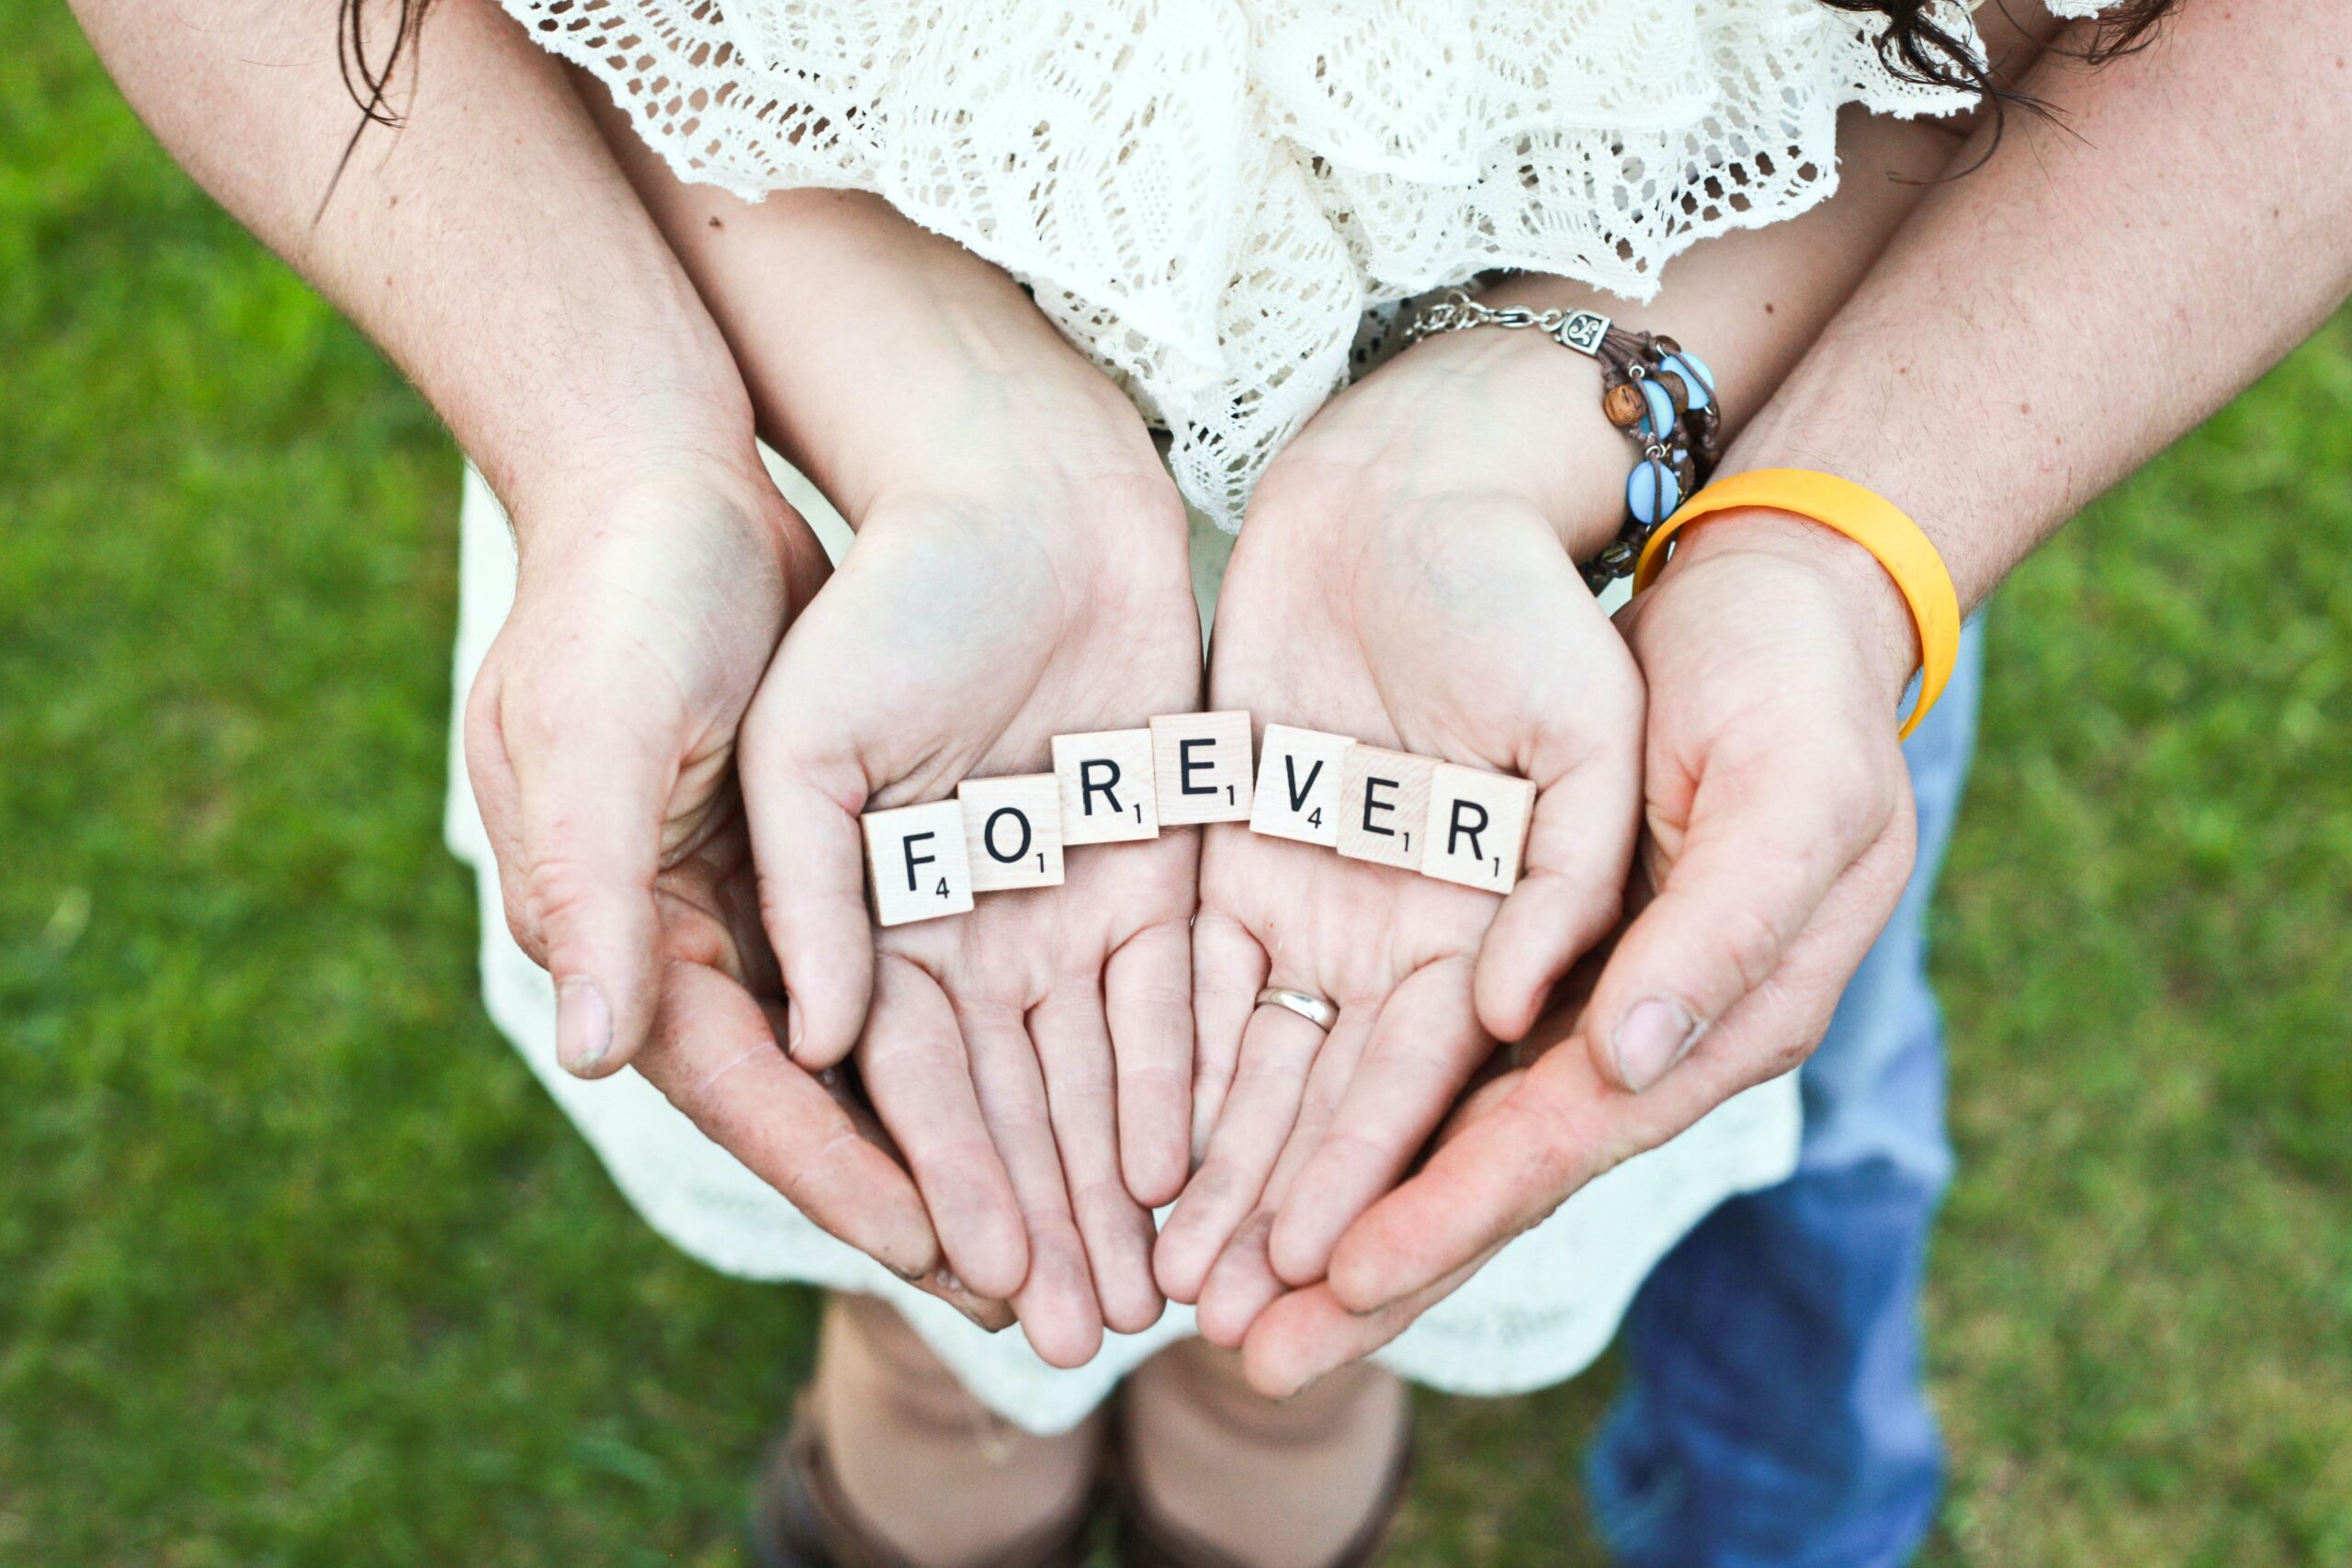 Prioritize you relationship forever